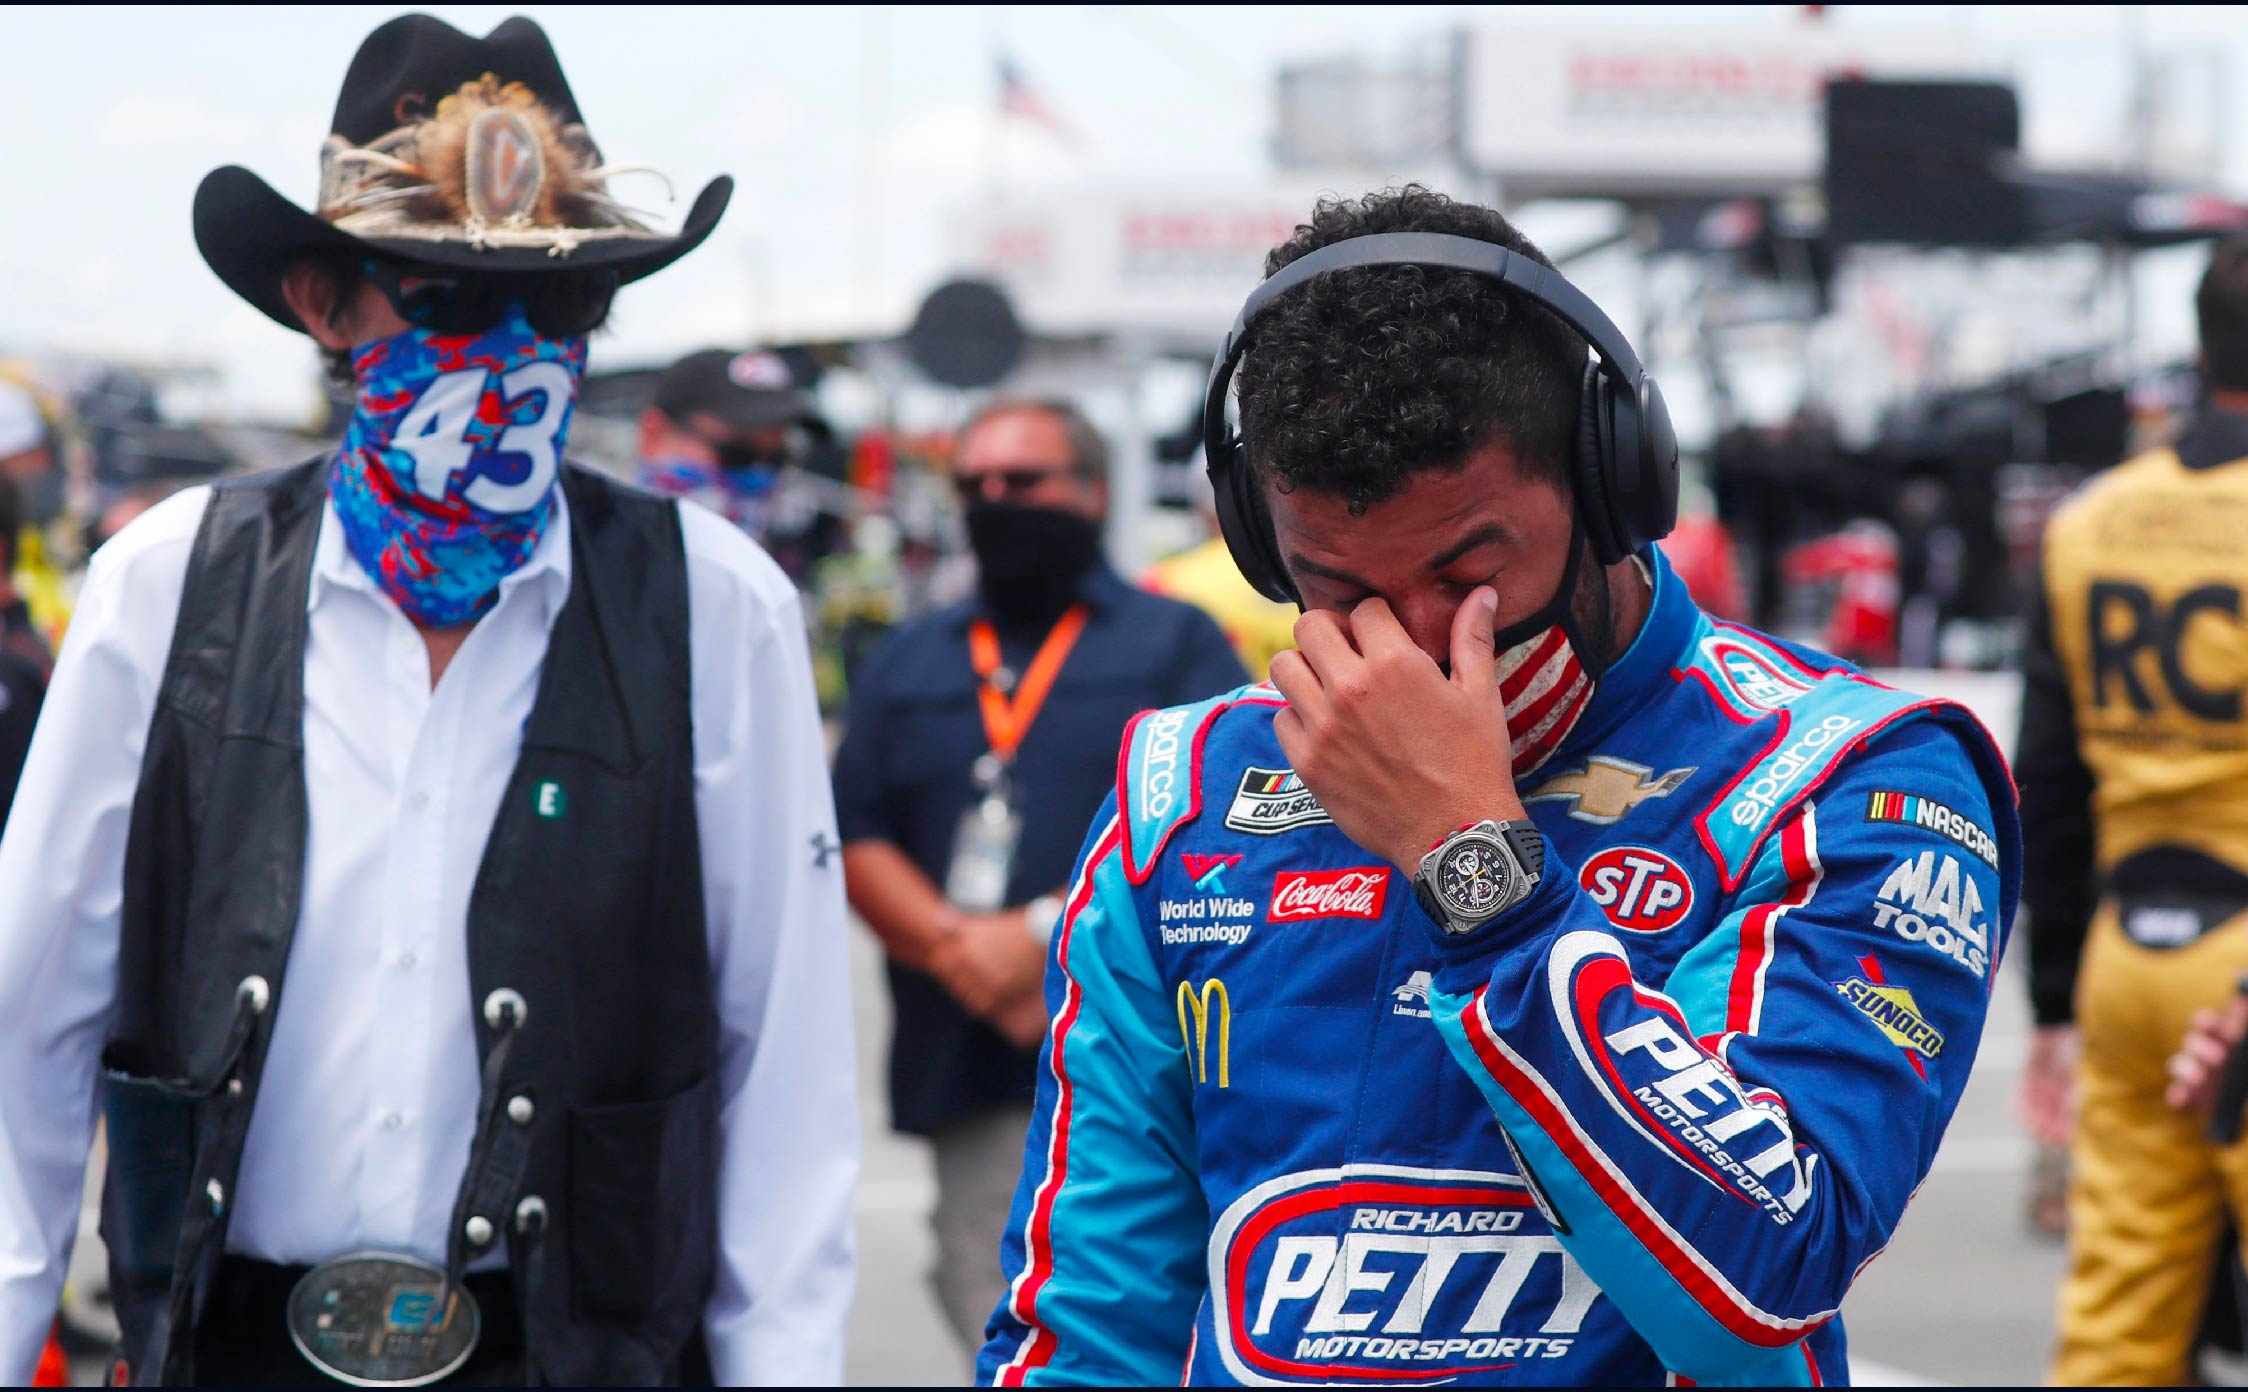 After Richard Petty Risked His Reputation to Defend Him, Disgraced Bubba Wallace Just Called it Quits